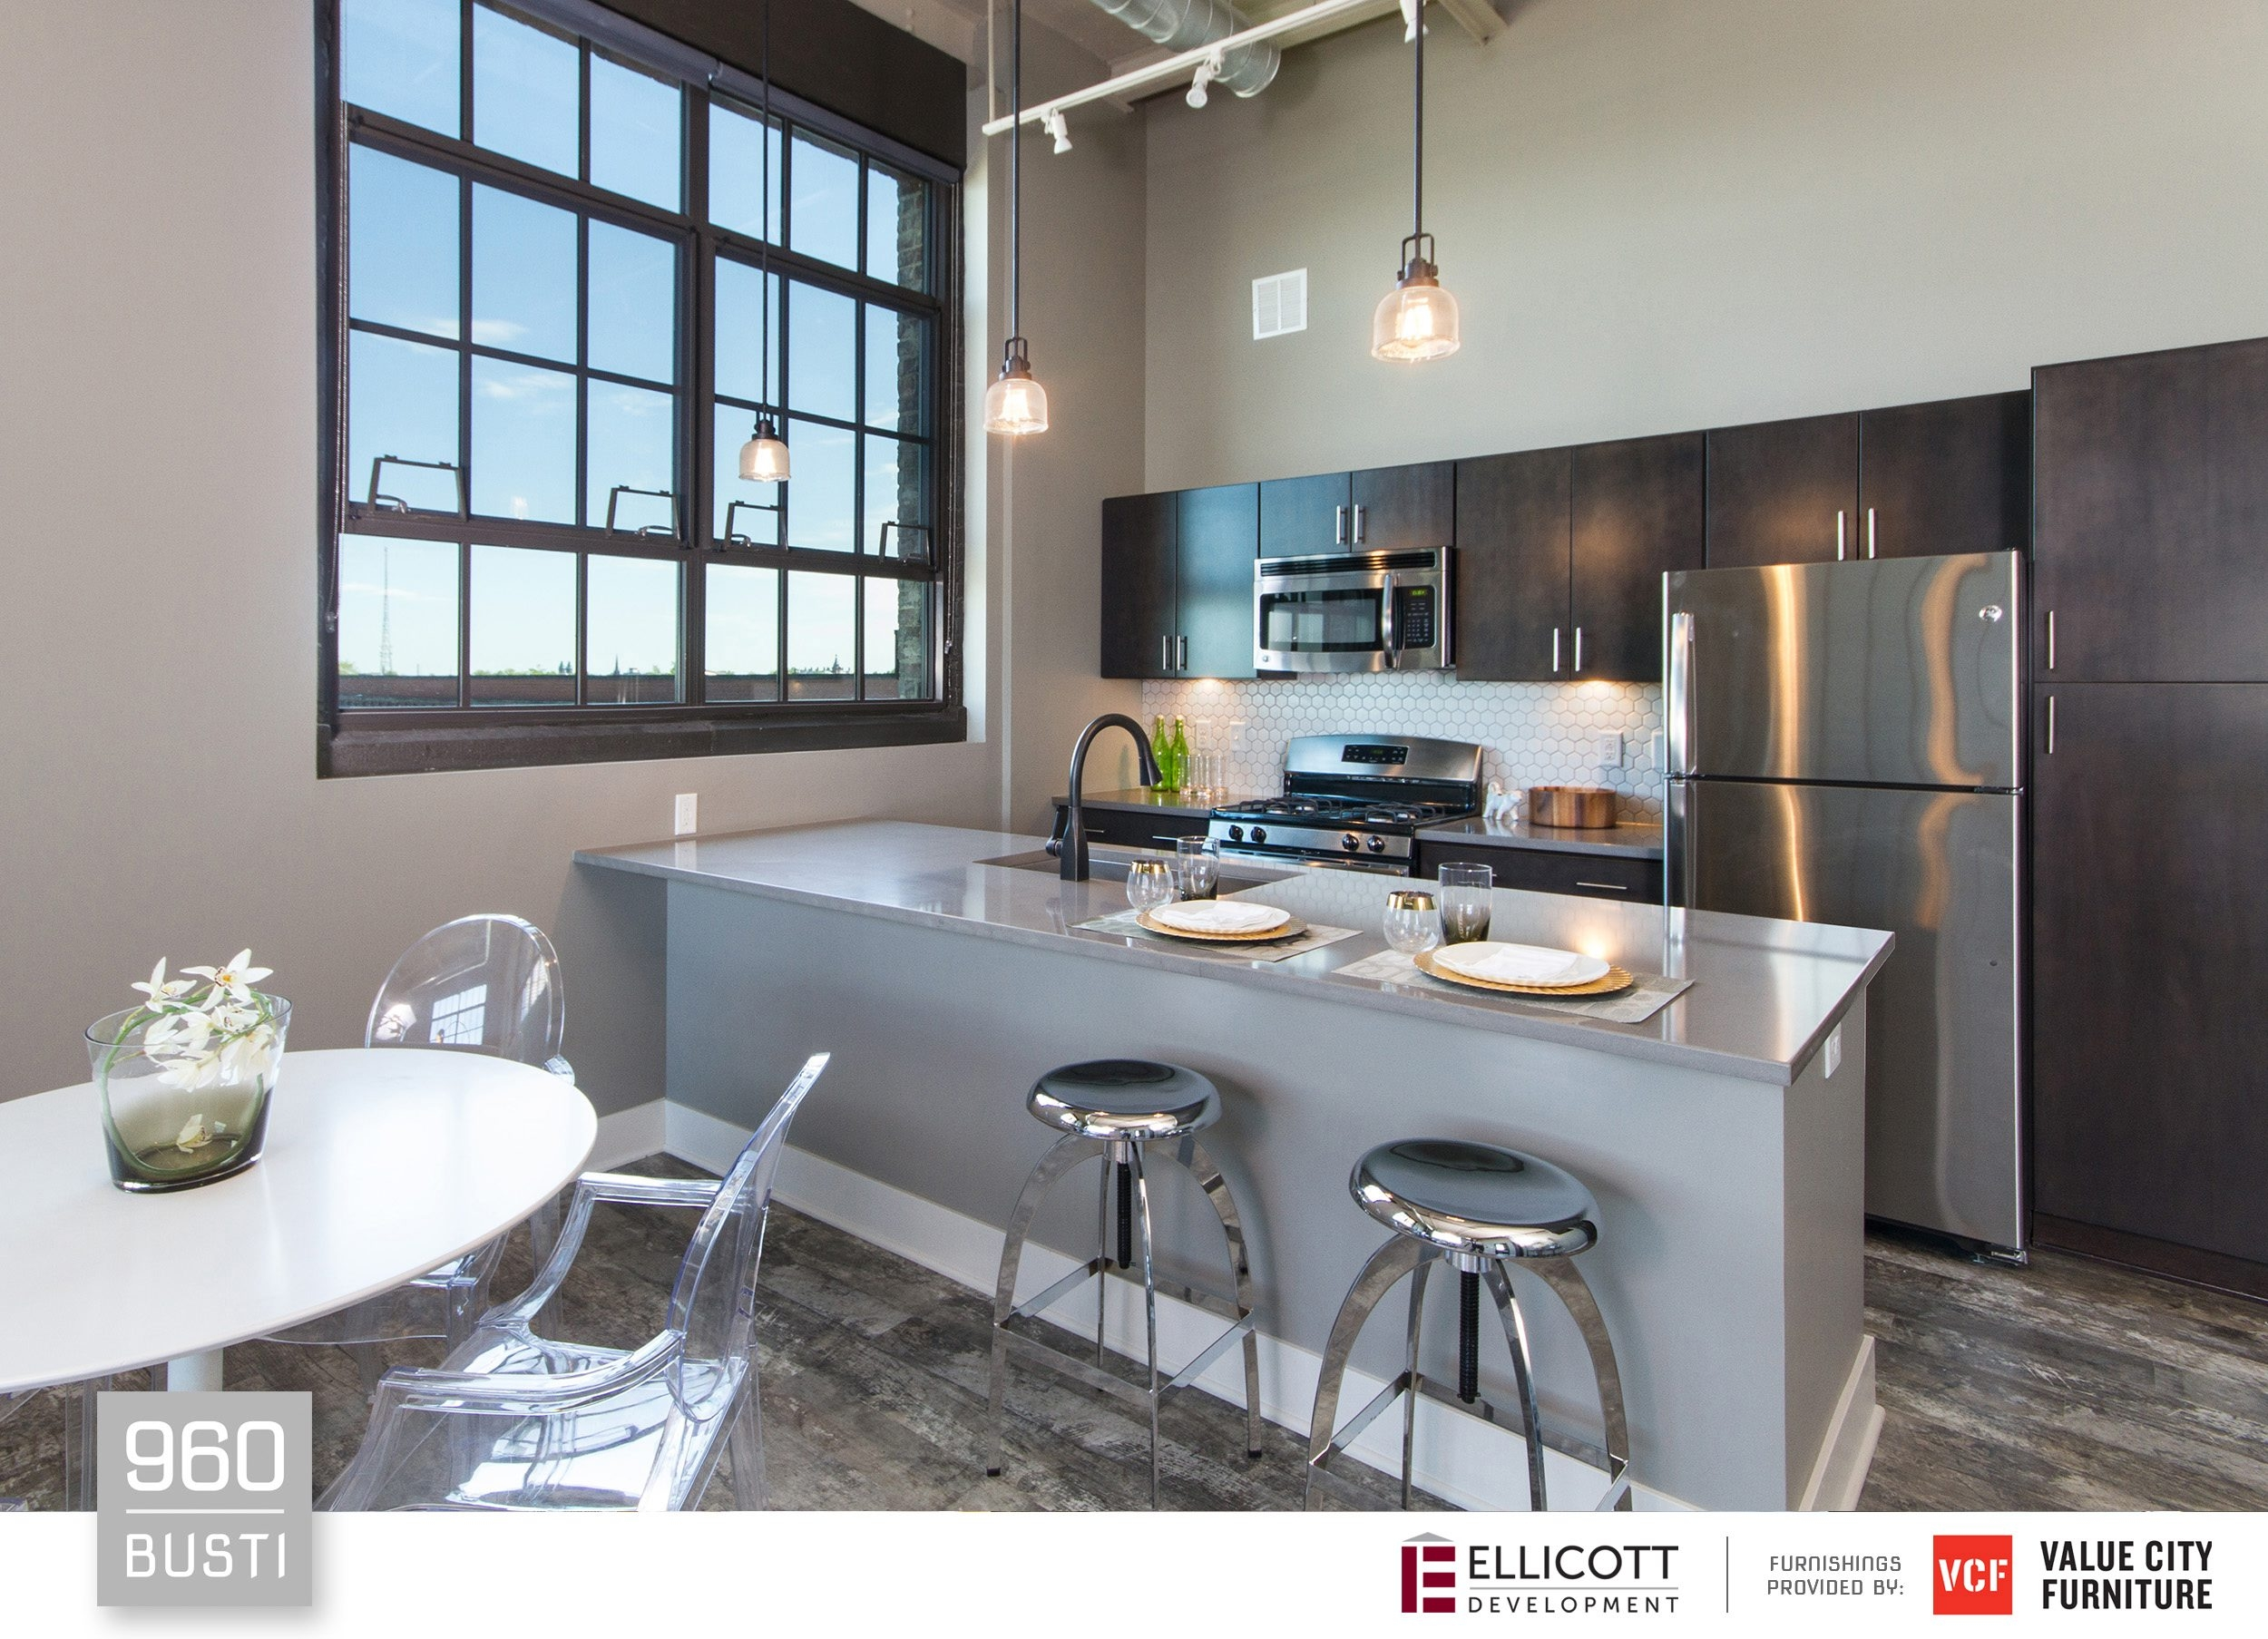 A kitchen in one of the 18 new upscale apartments at 960 Busti Ave.